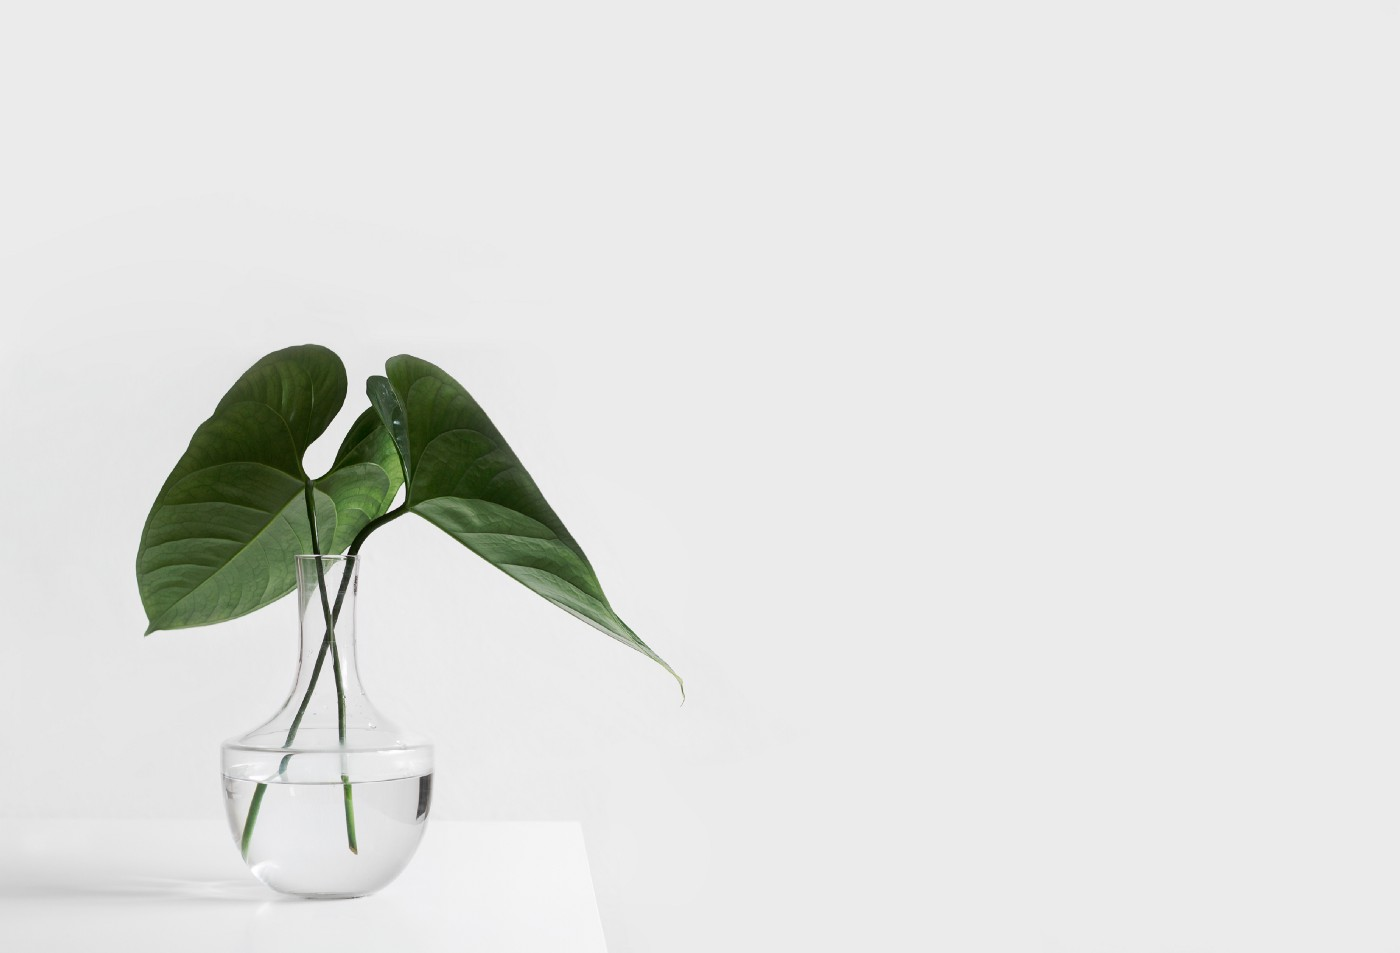 Two leaves in a vase of water